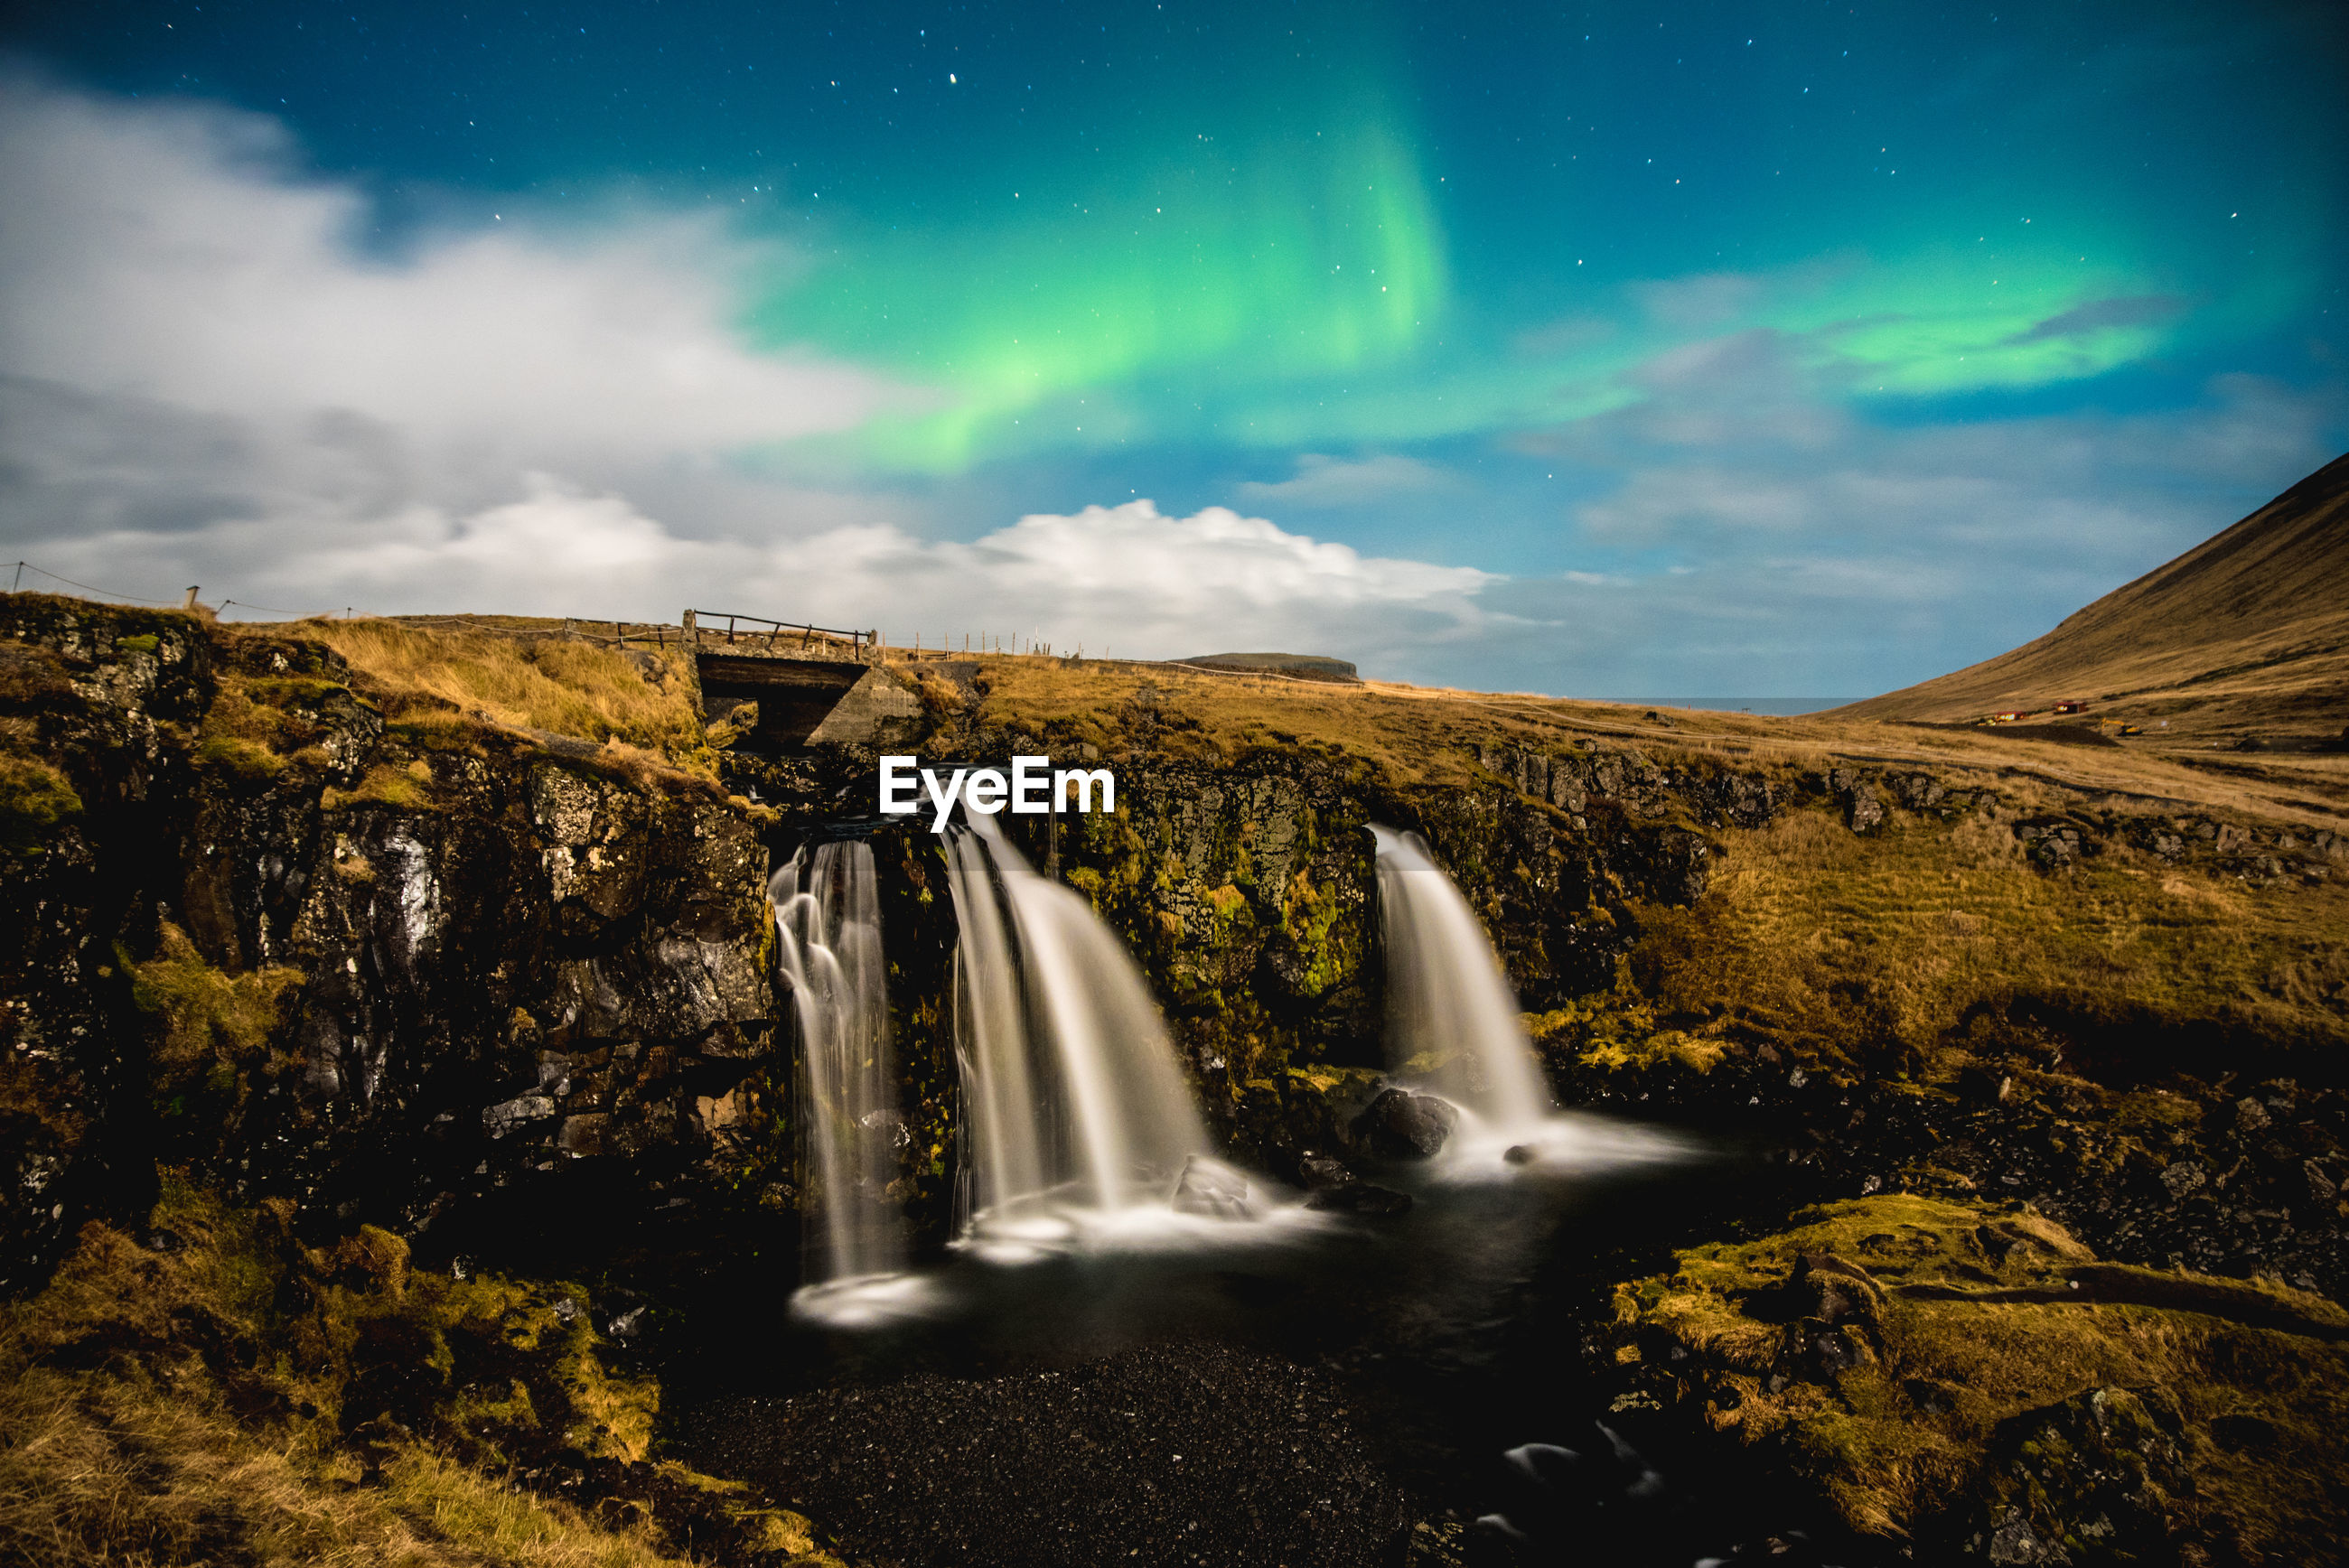 Scenic view of waterfall against night sky with aurora borealis